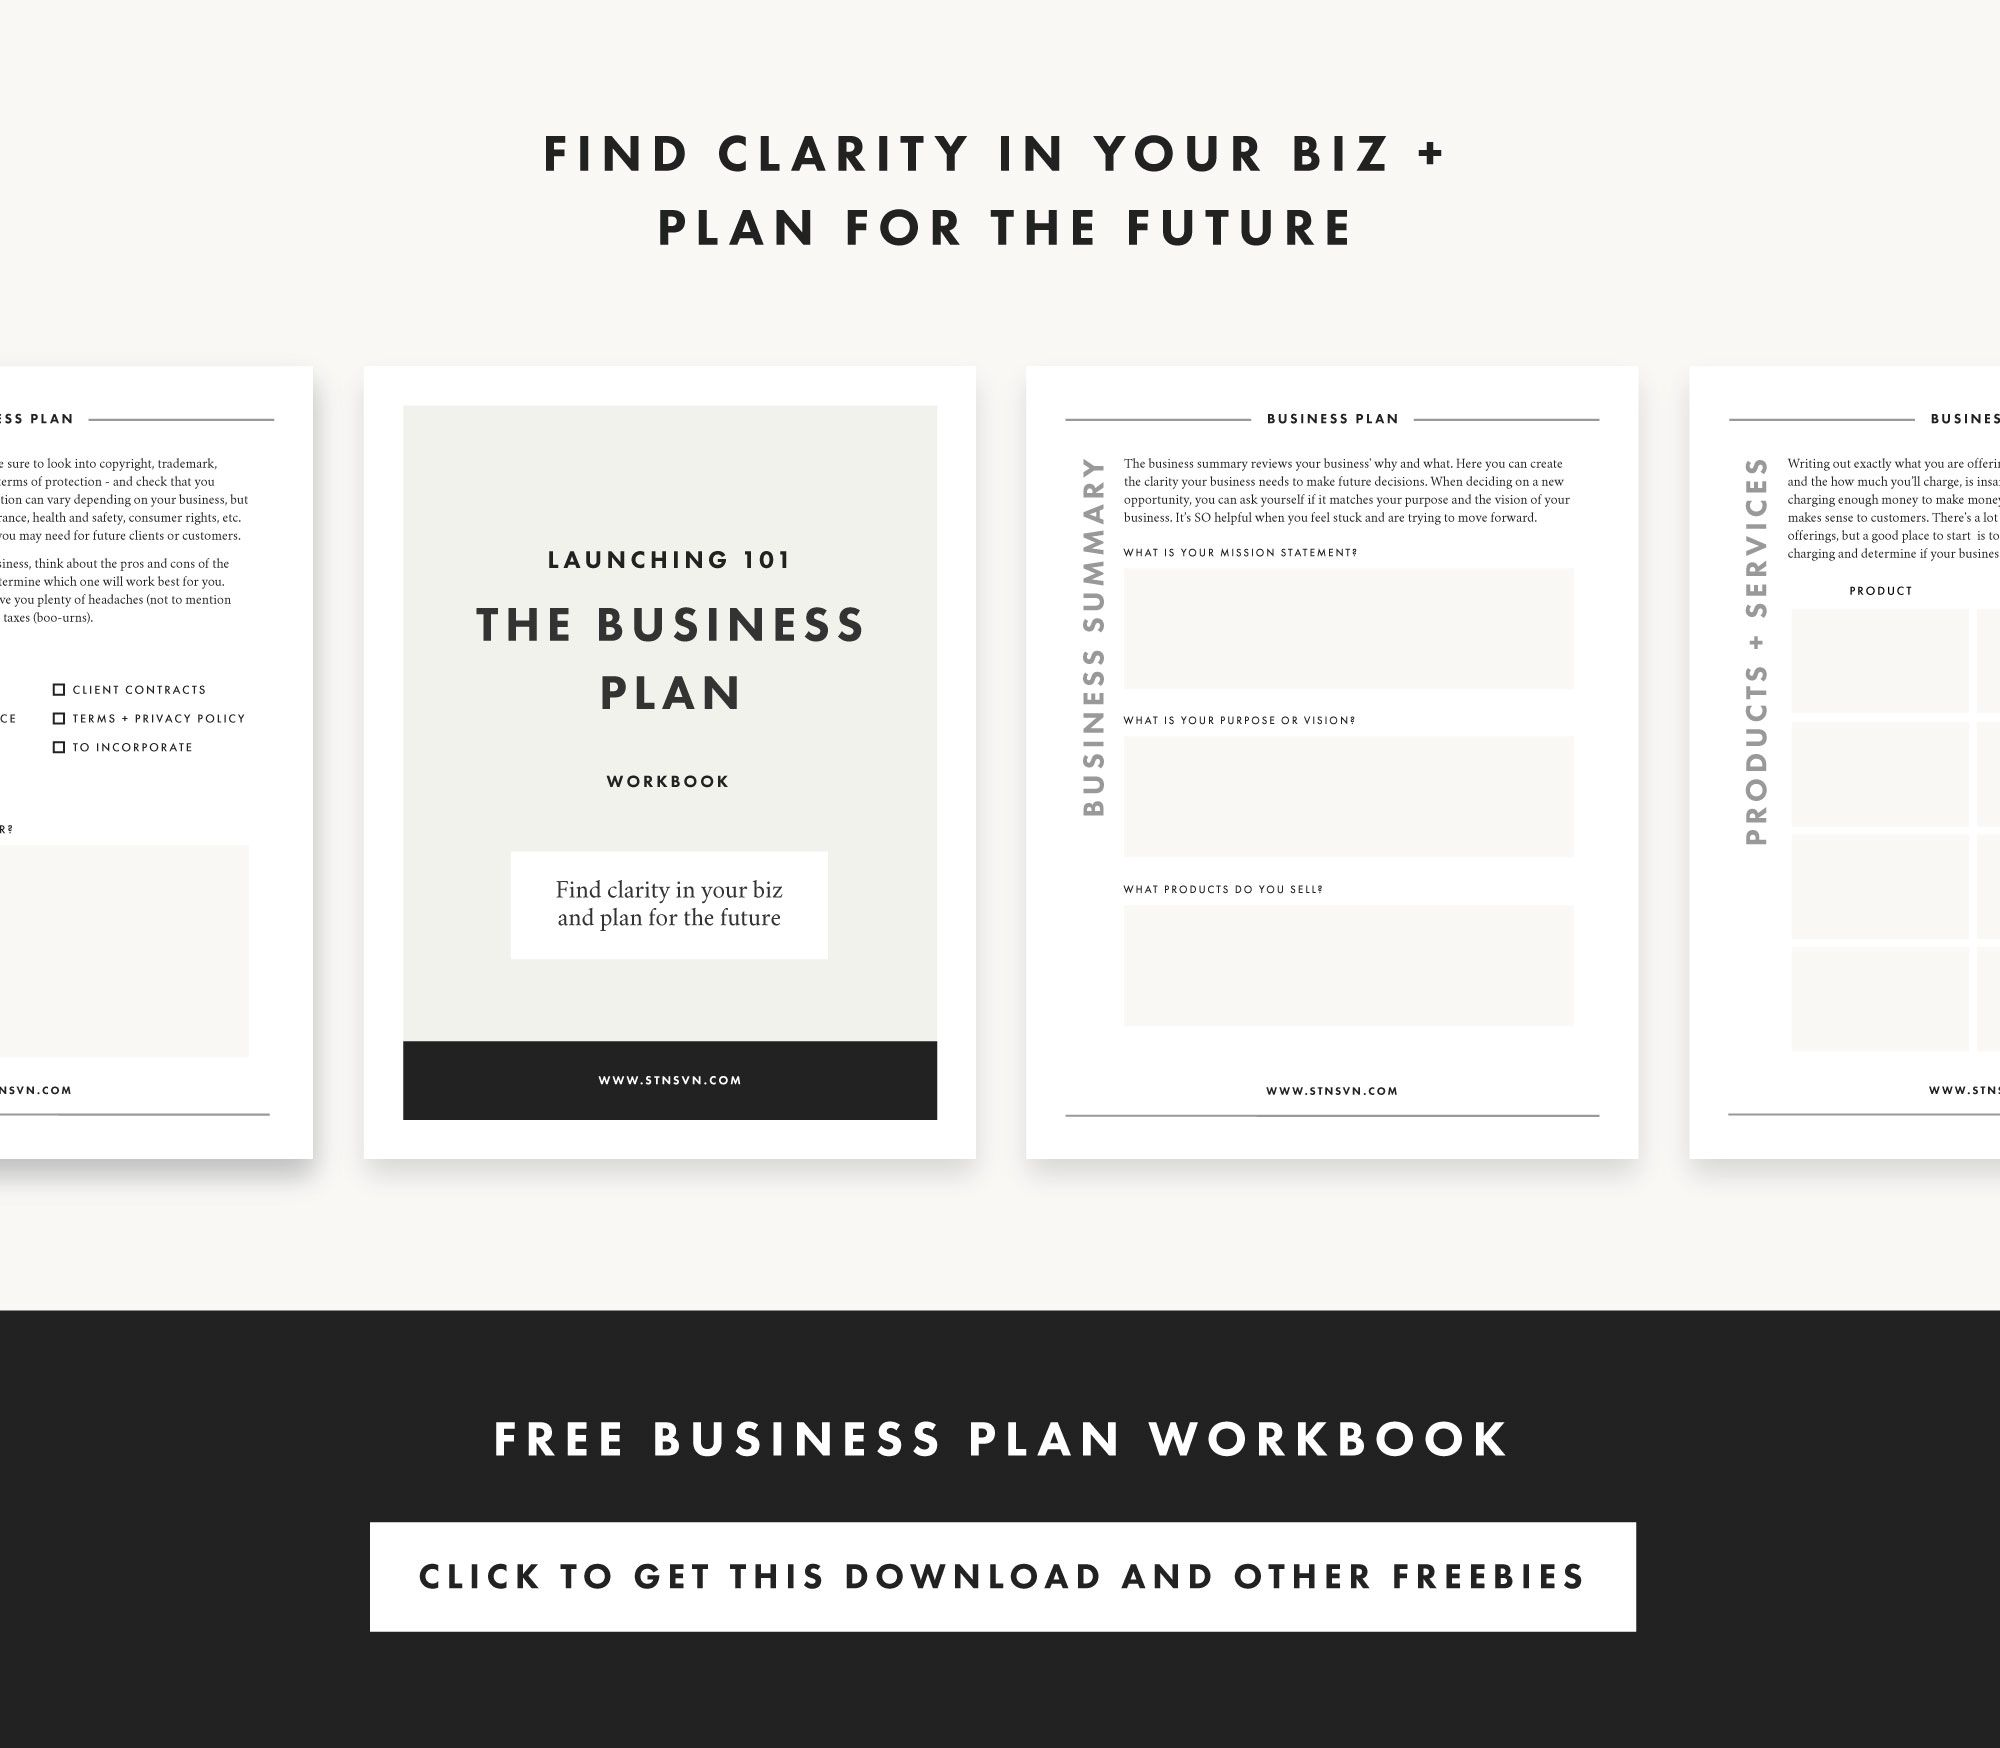 Launching 101 Find Clarity With a Business Plan